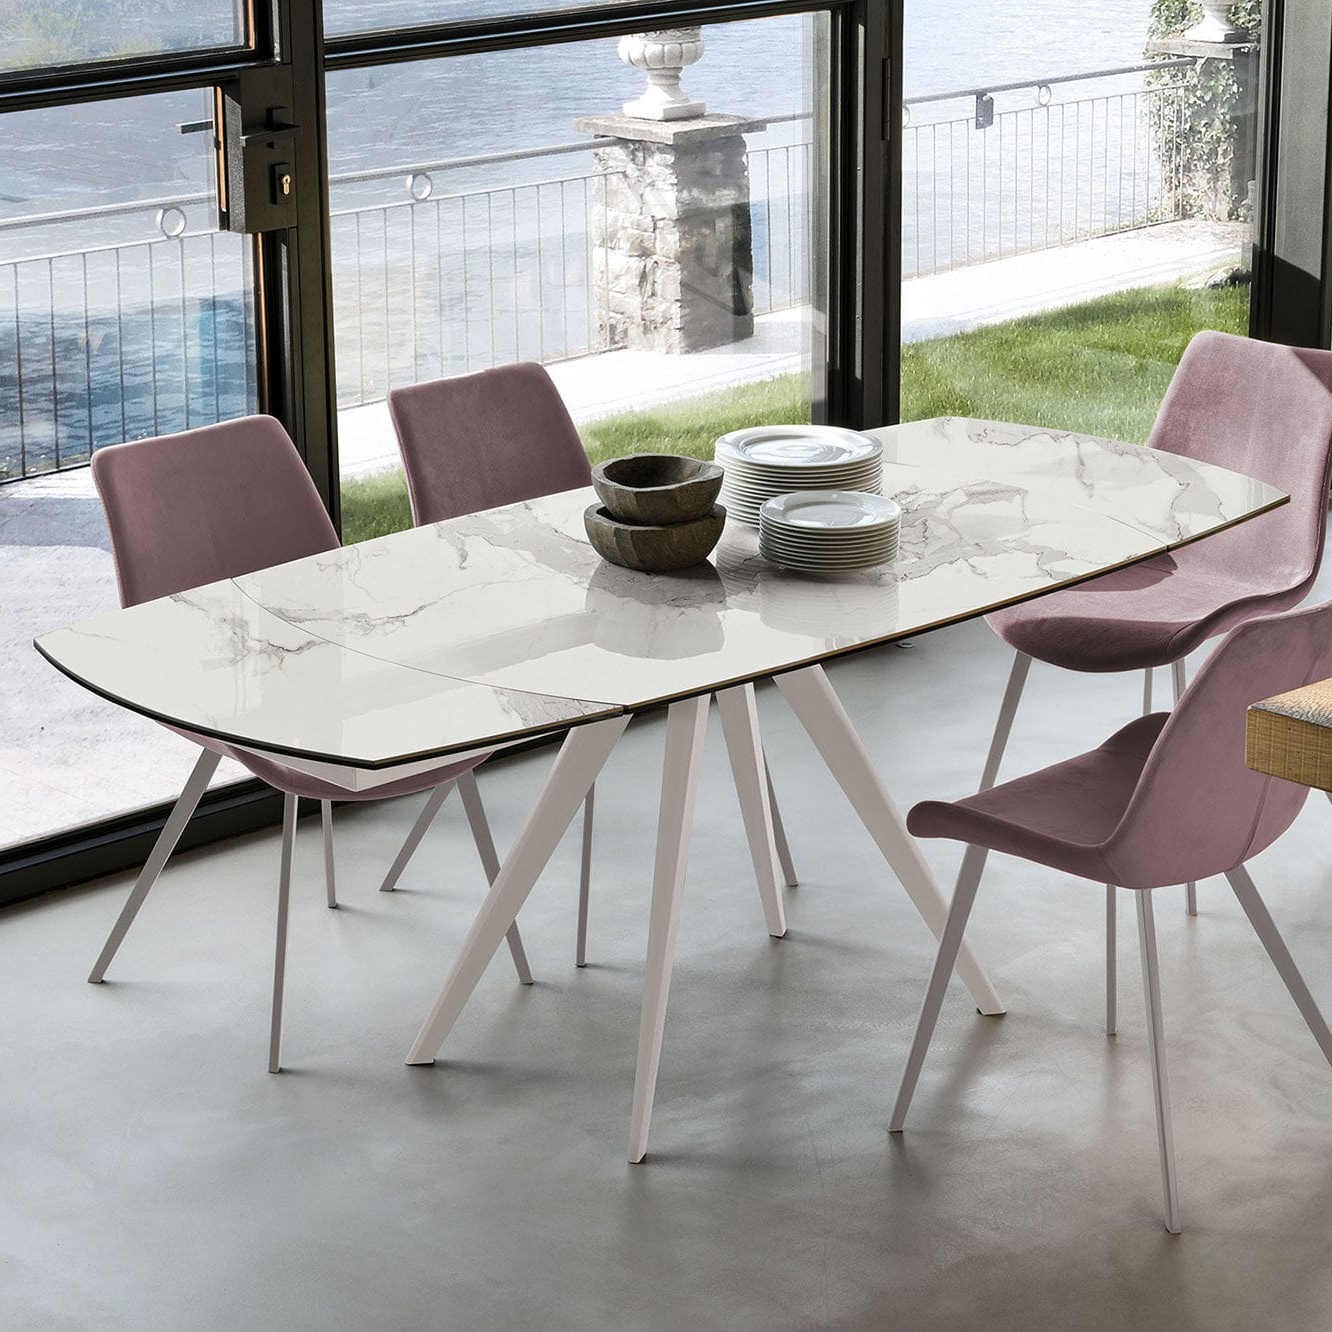 Dining Tables With Brushed Stainless Steel Frame inside Current Contemporary Dining Table / Tempered Glass / Porcelain